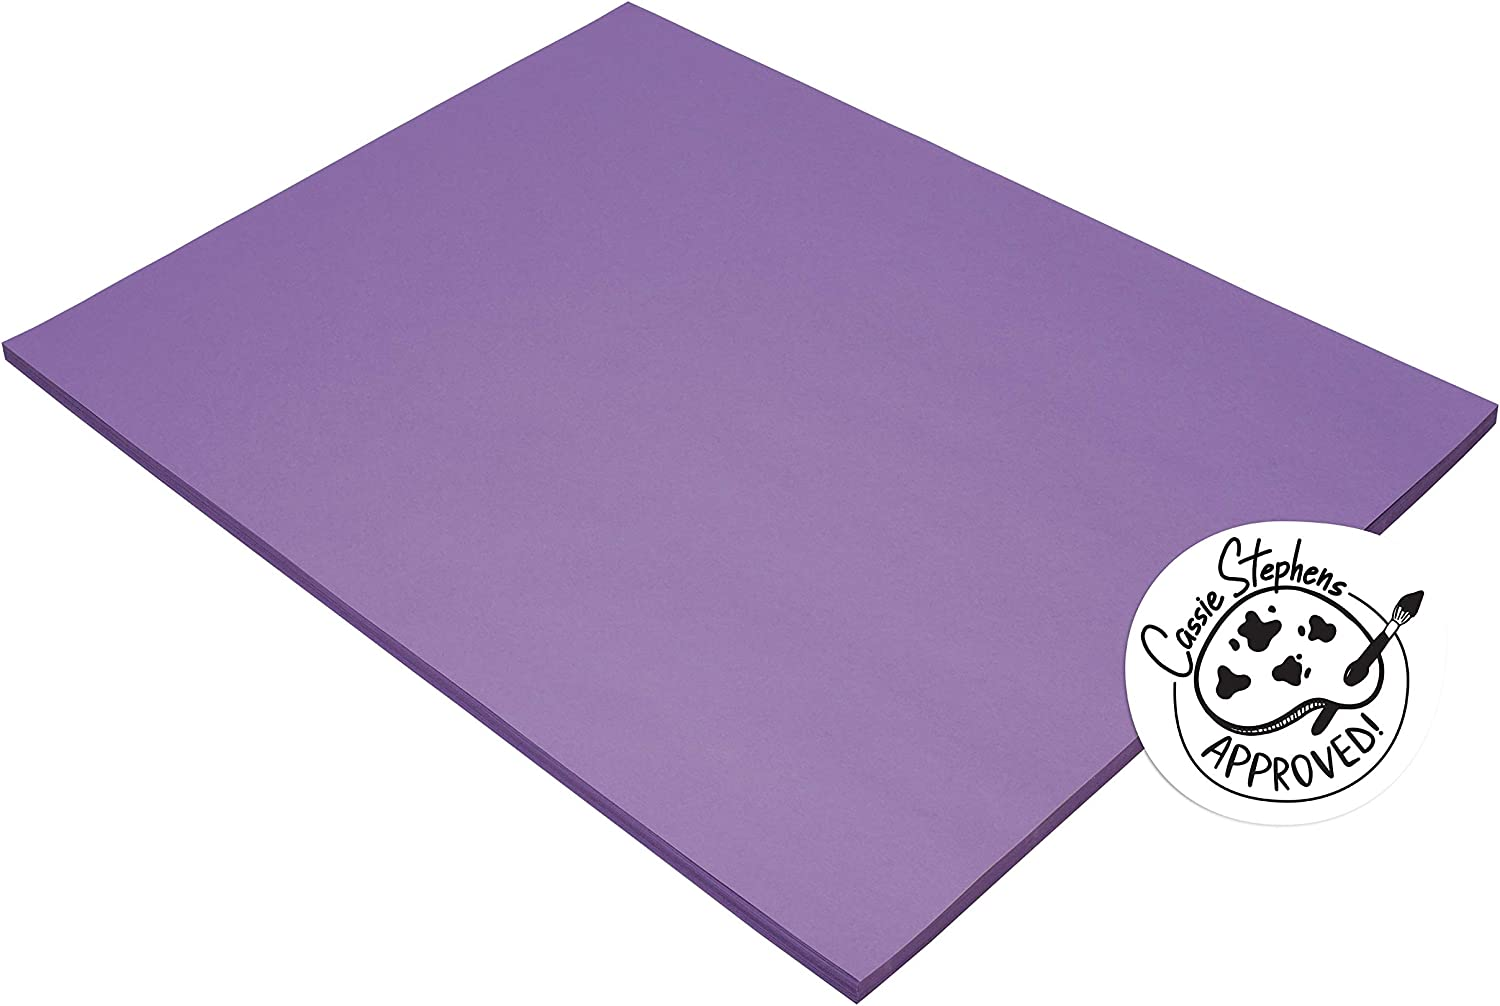 Tru-Ray Sulphite Construction Paper 18 Inches 50 x Large-scale sale Branded goods Violet 24